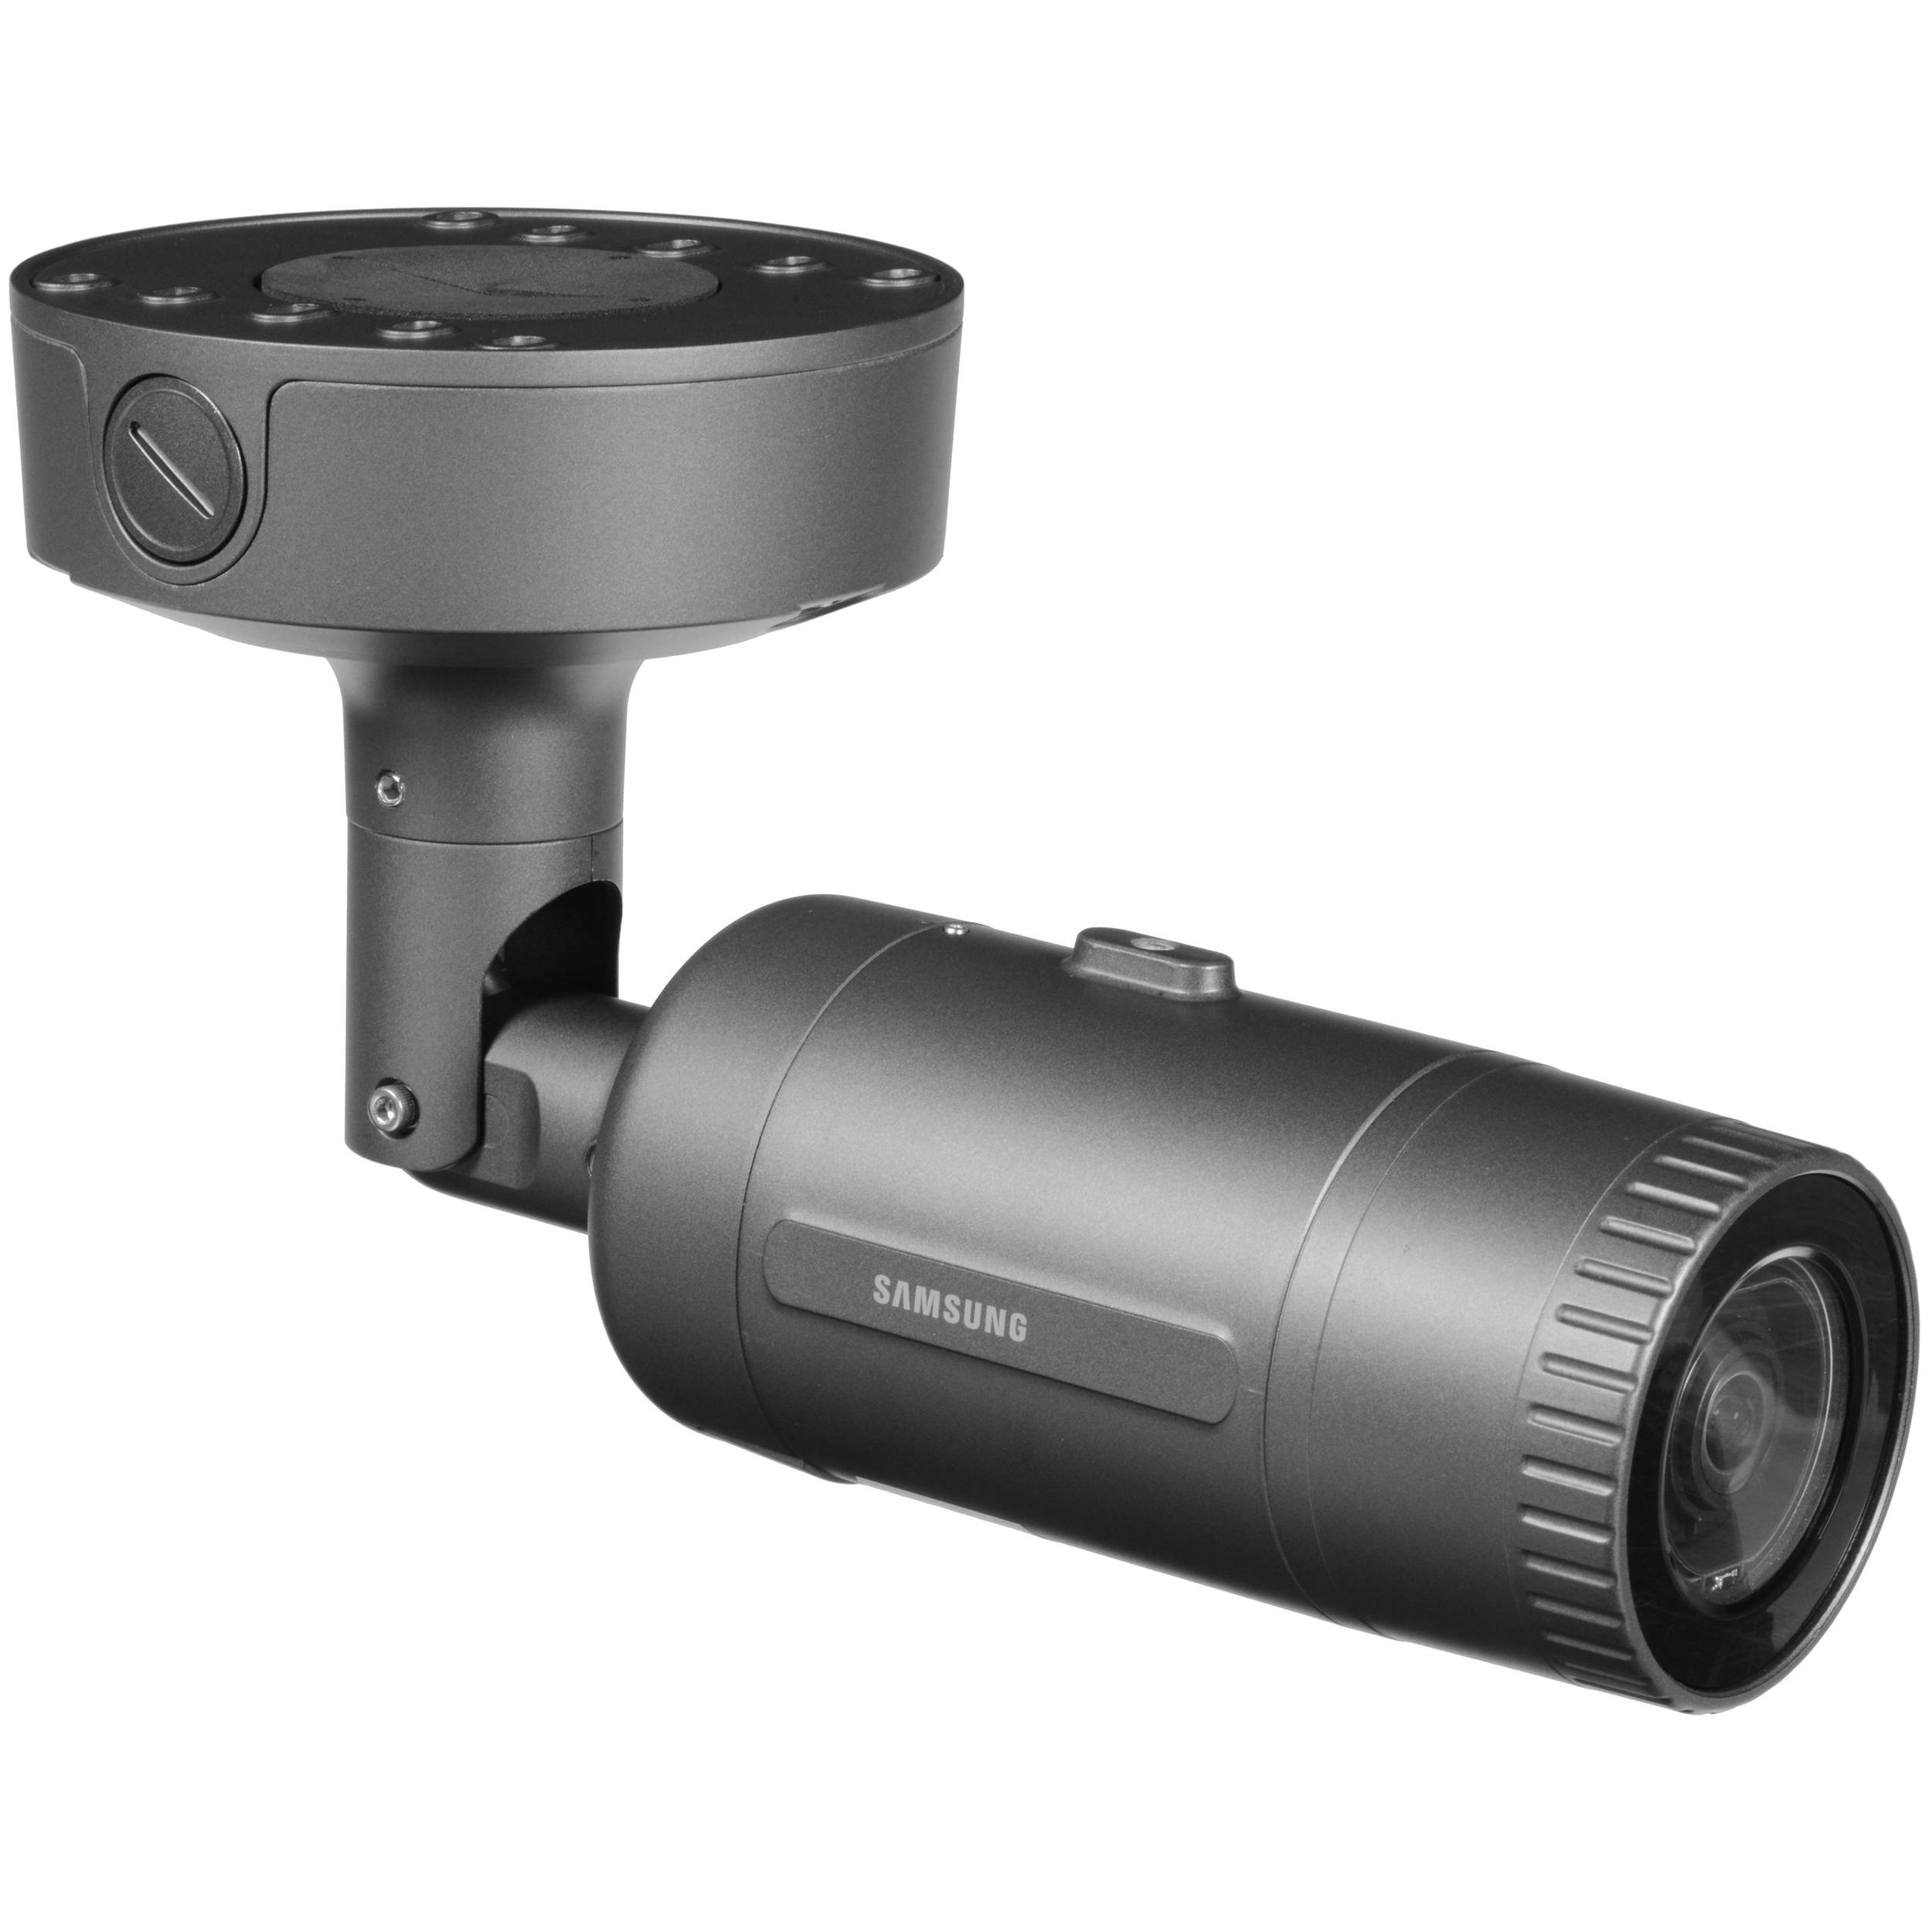 Hanwha Techwin WiseNet 5MP Vandal-Resistant Outdoor Network Bullet Camera  with Night Vision